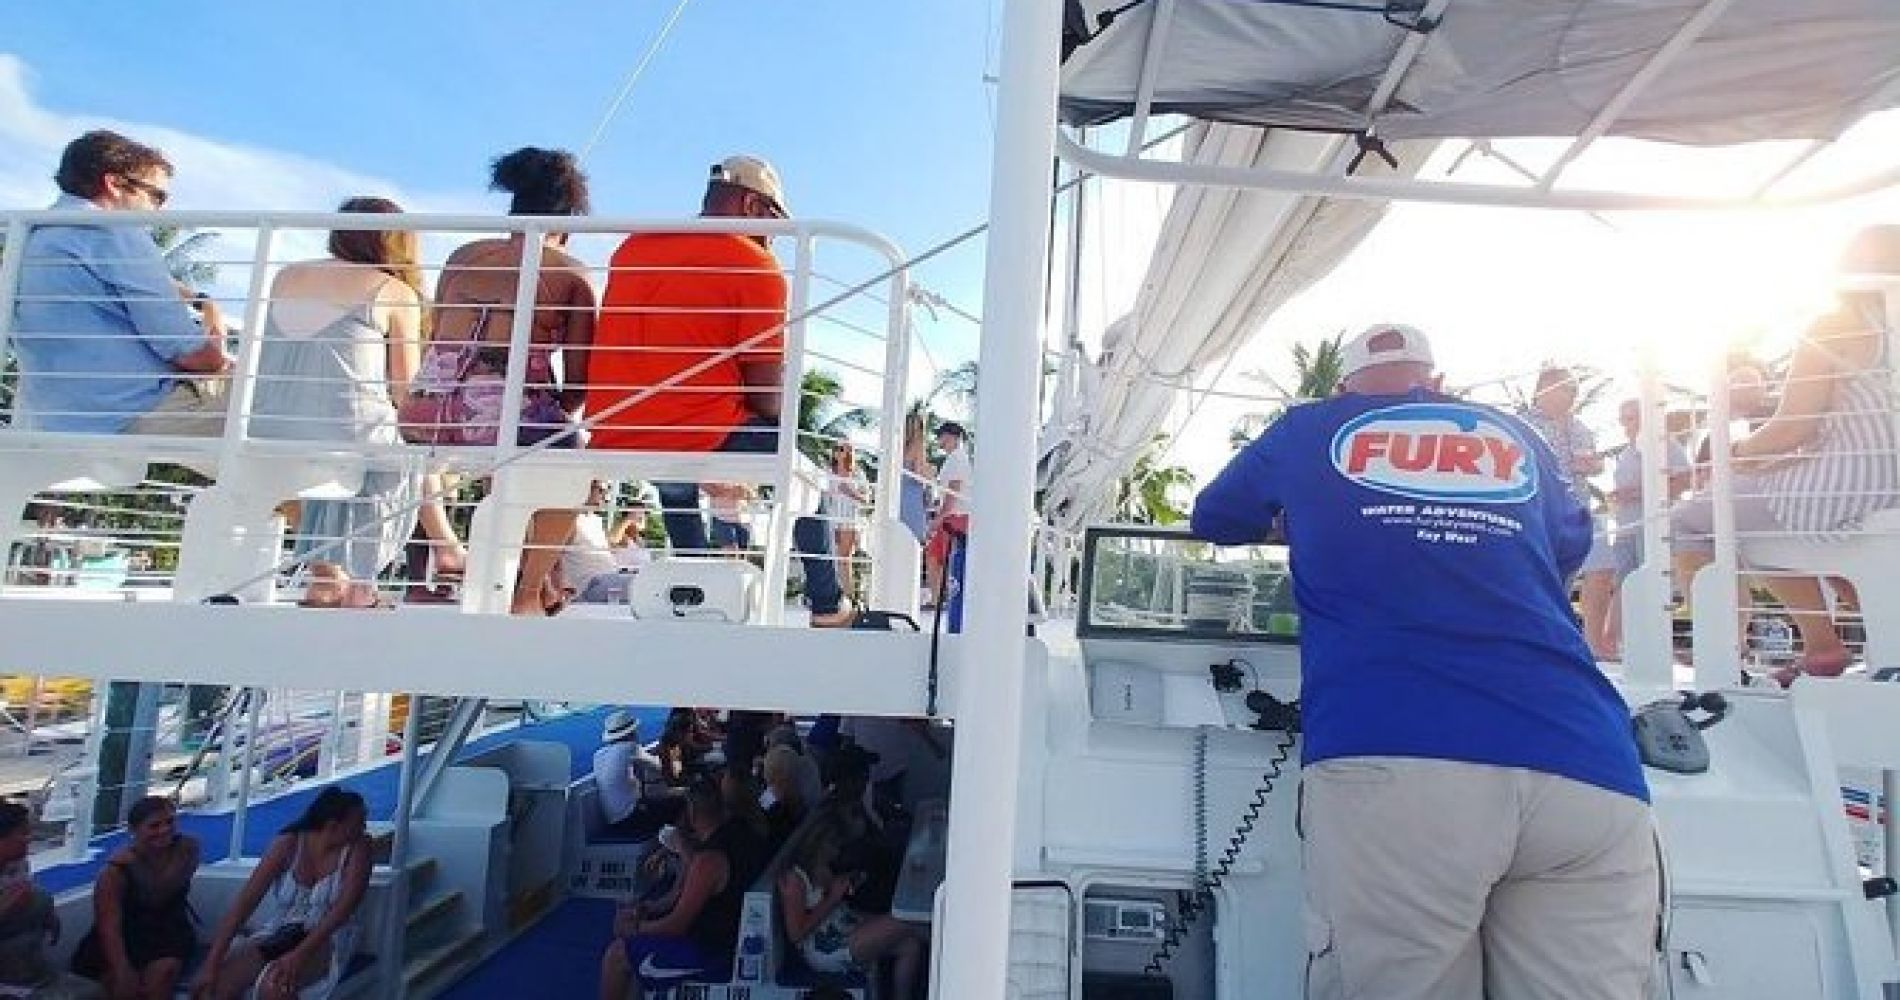 Key West Sunset Party Cruise with Live Music, Food and Drinks